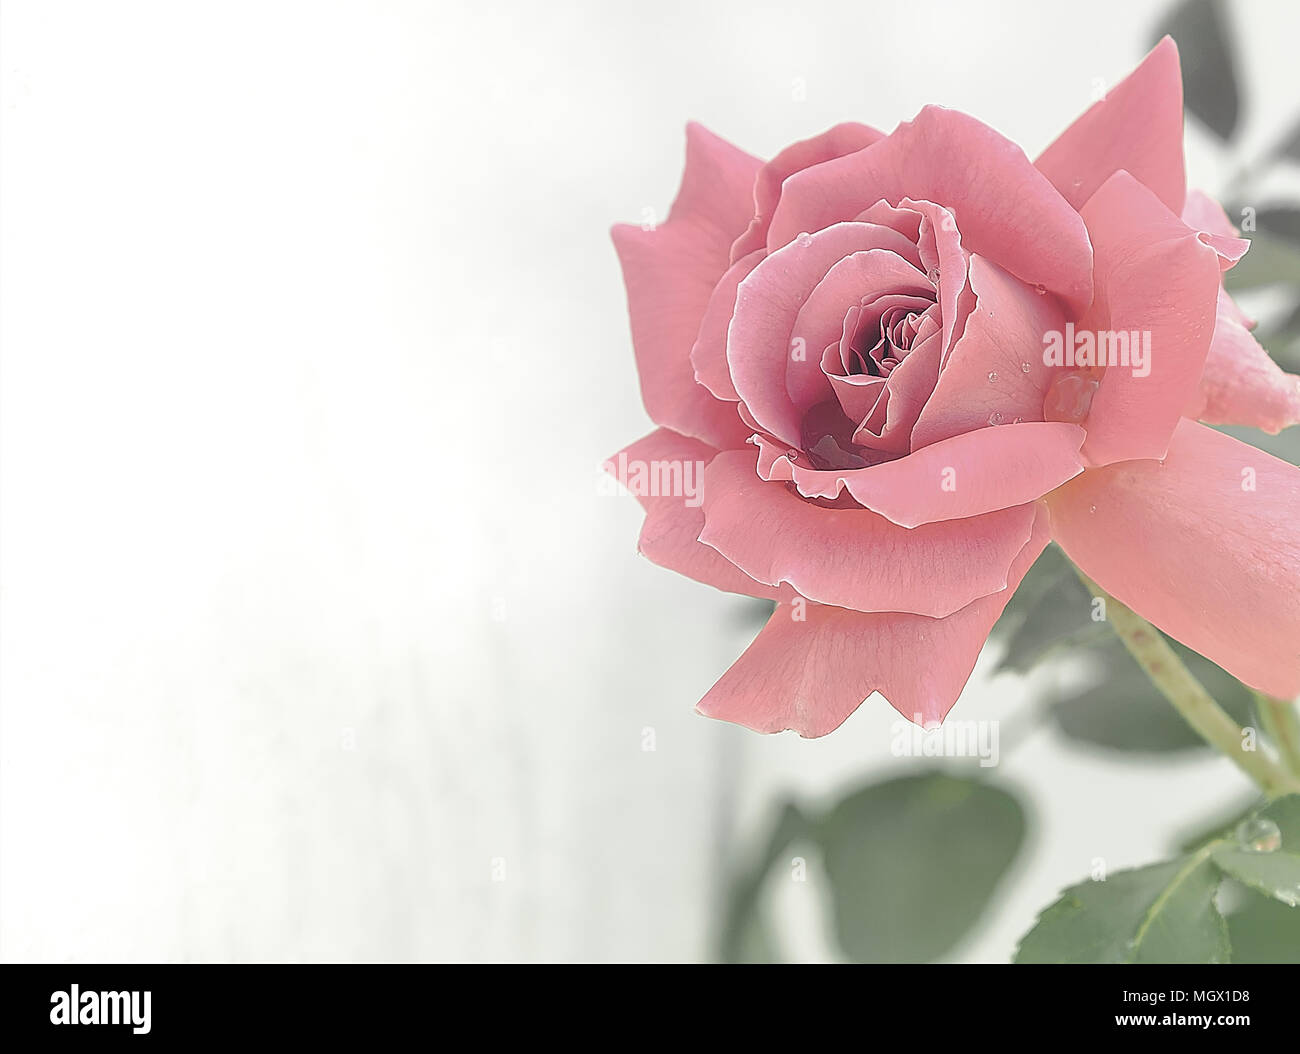 Baby Pink Rose with a white background. Stock Photo. - Stock Image